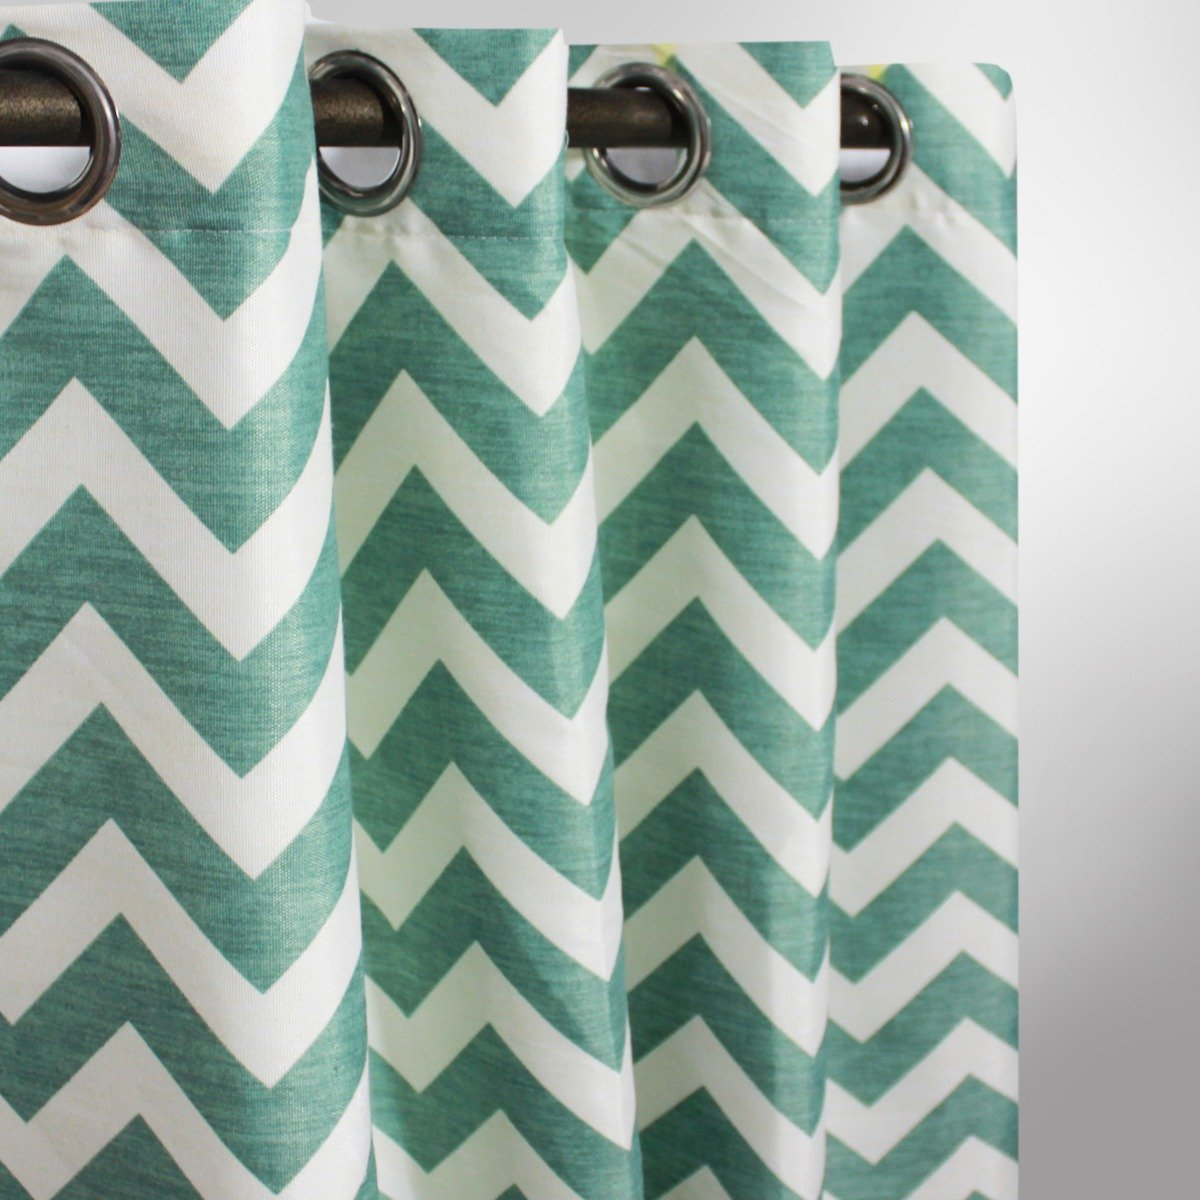 Chevron Curtain (Lining)